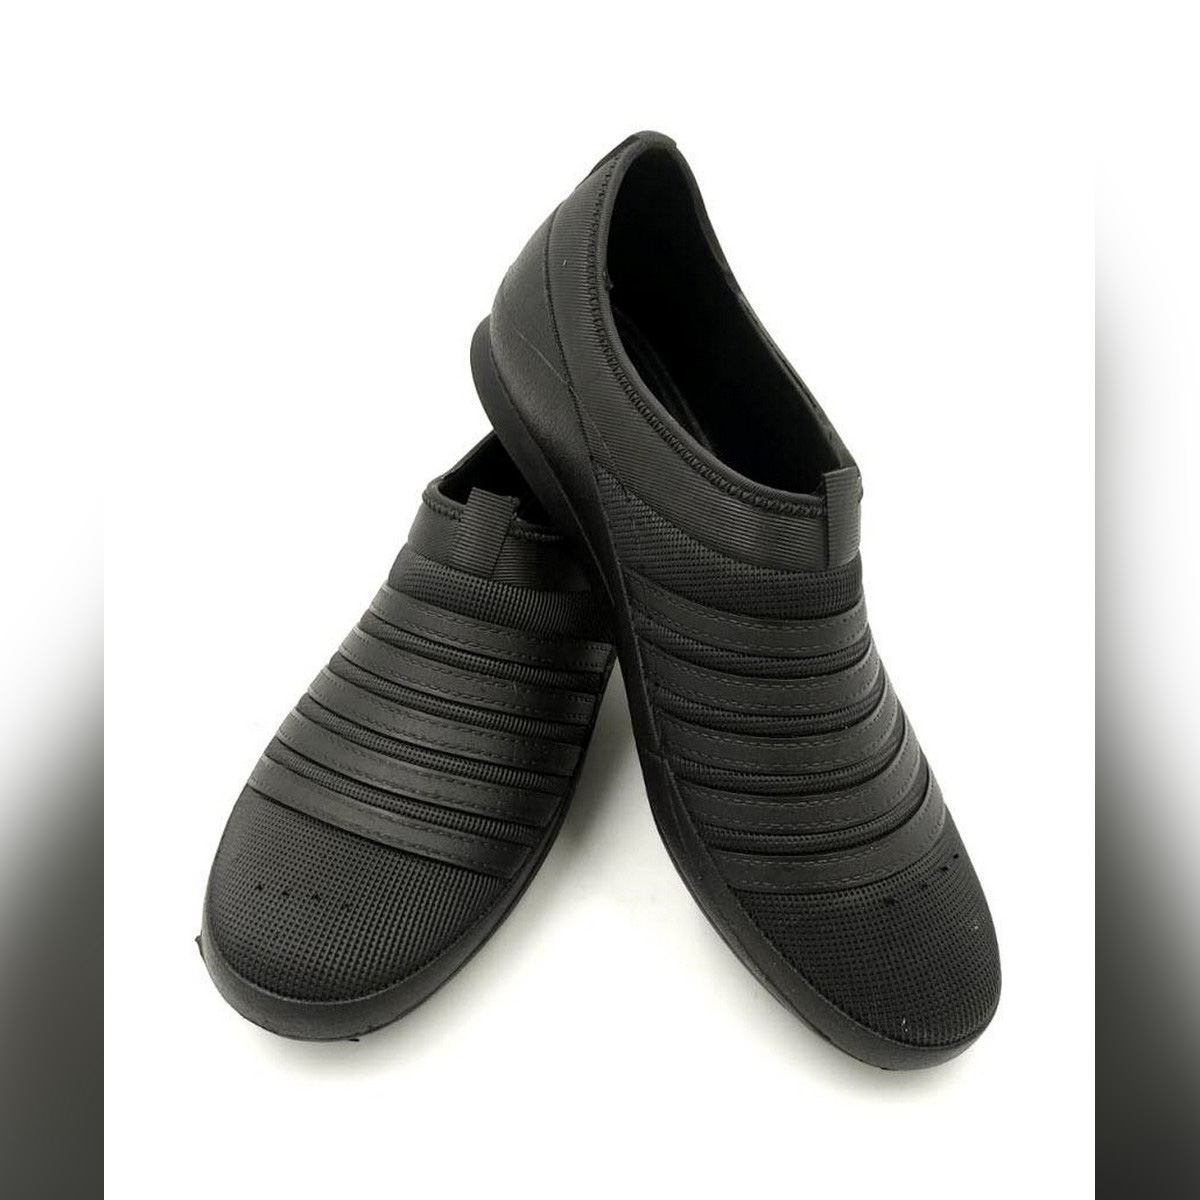 Shoes For Men Jolly Stylish Rubber Comfortable and Washable